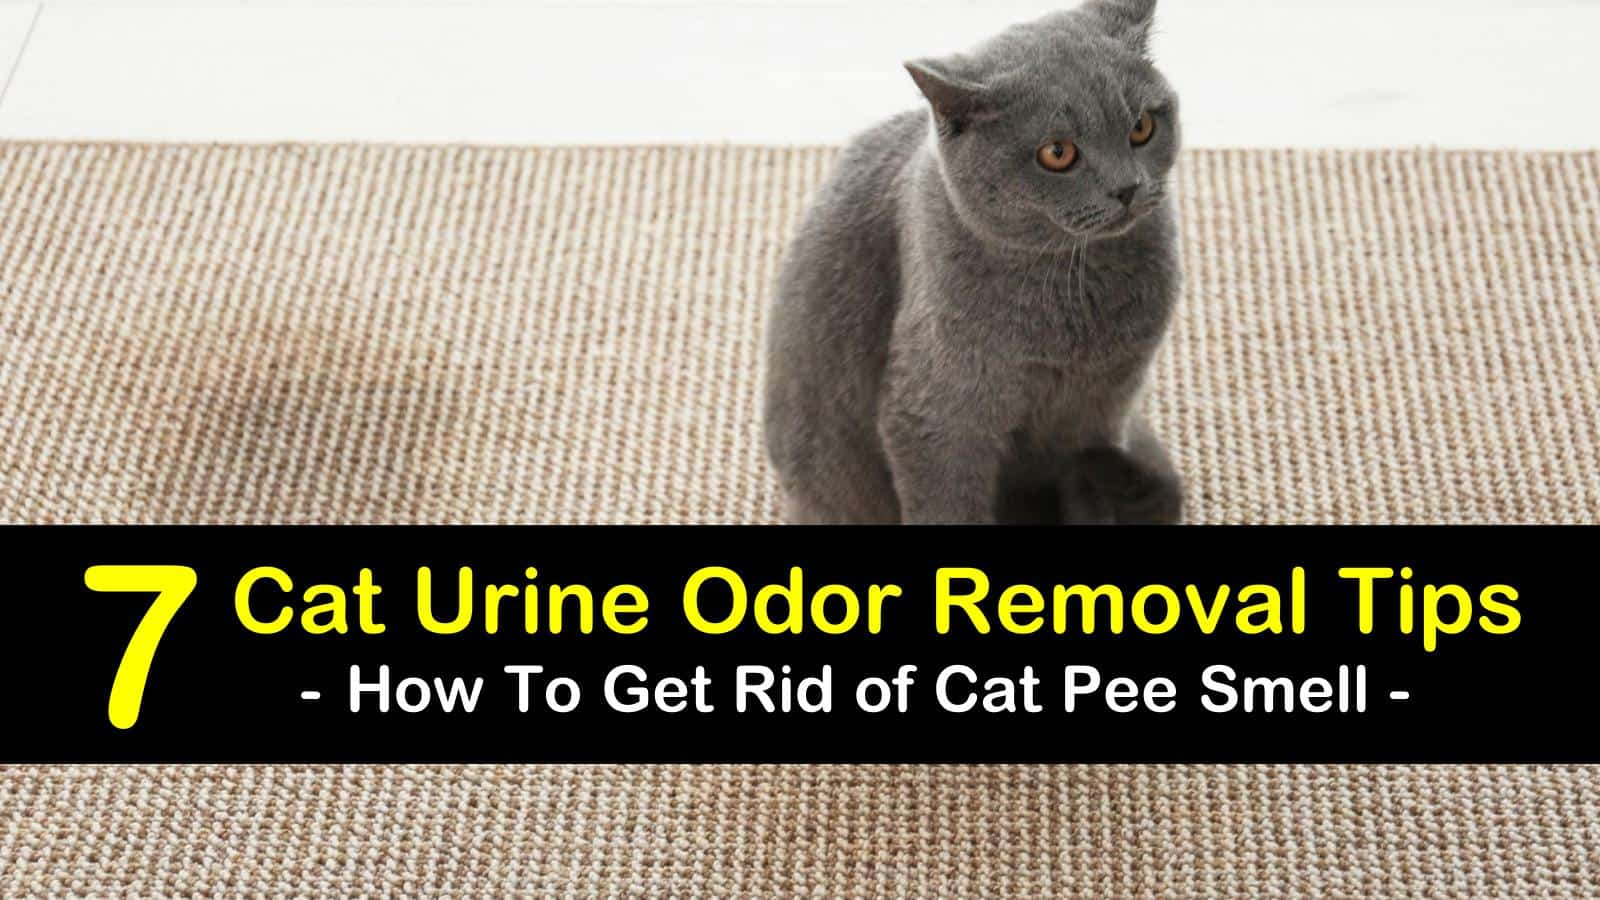 How To Get Rid Of Cat Urine Smell >> How To Get Rid Of Cat Pee Smell 7 Cat Urine Odor Removal Tips